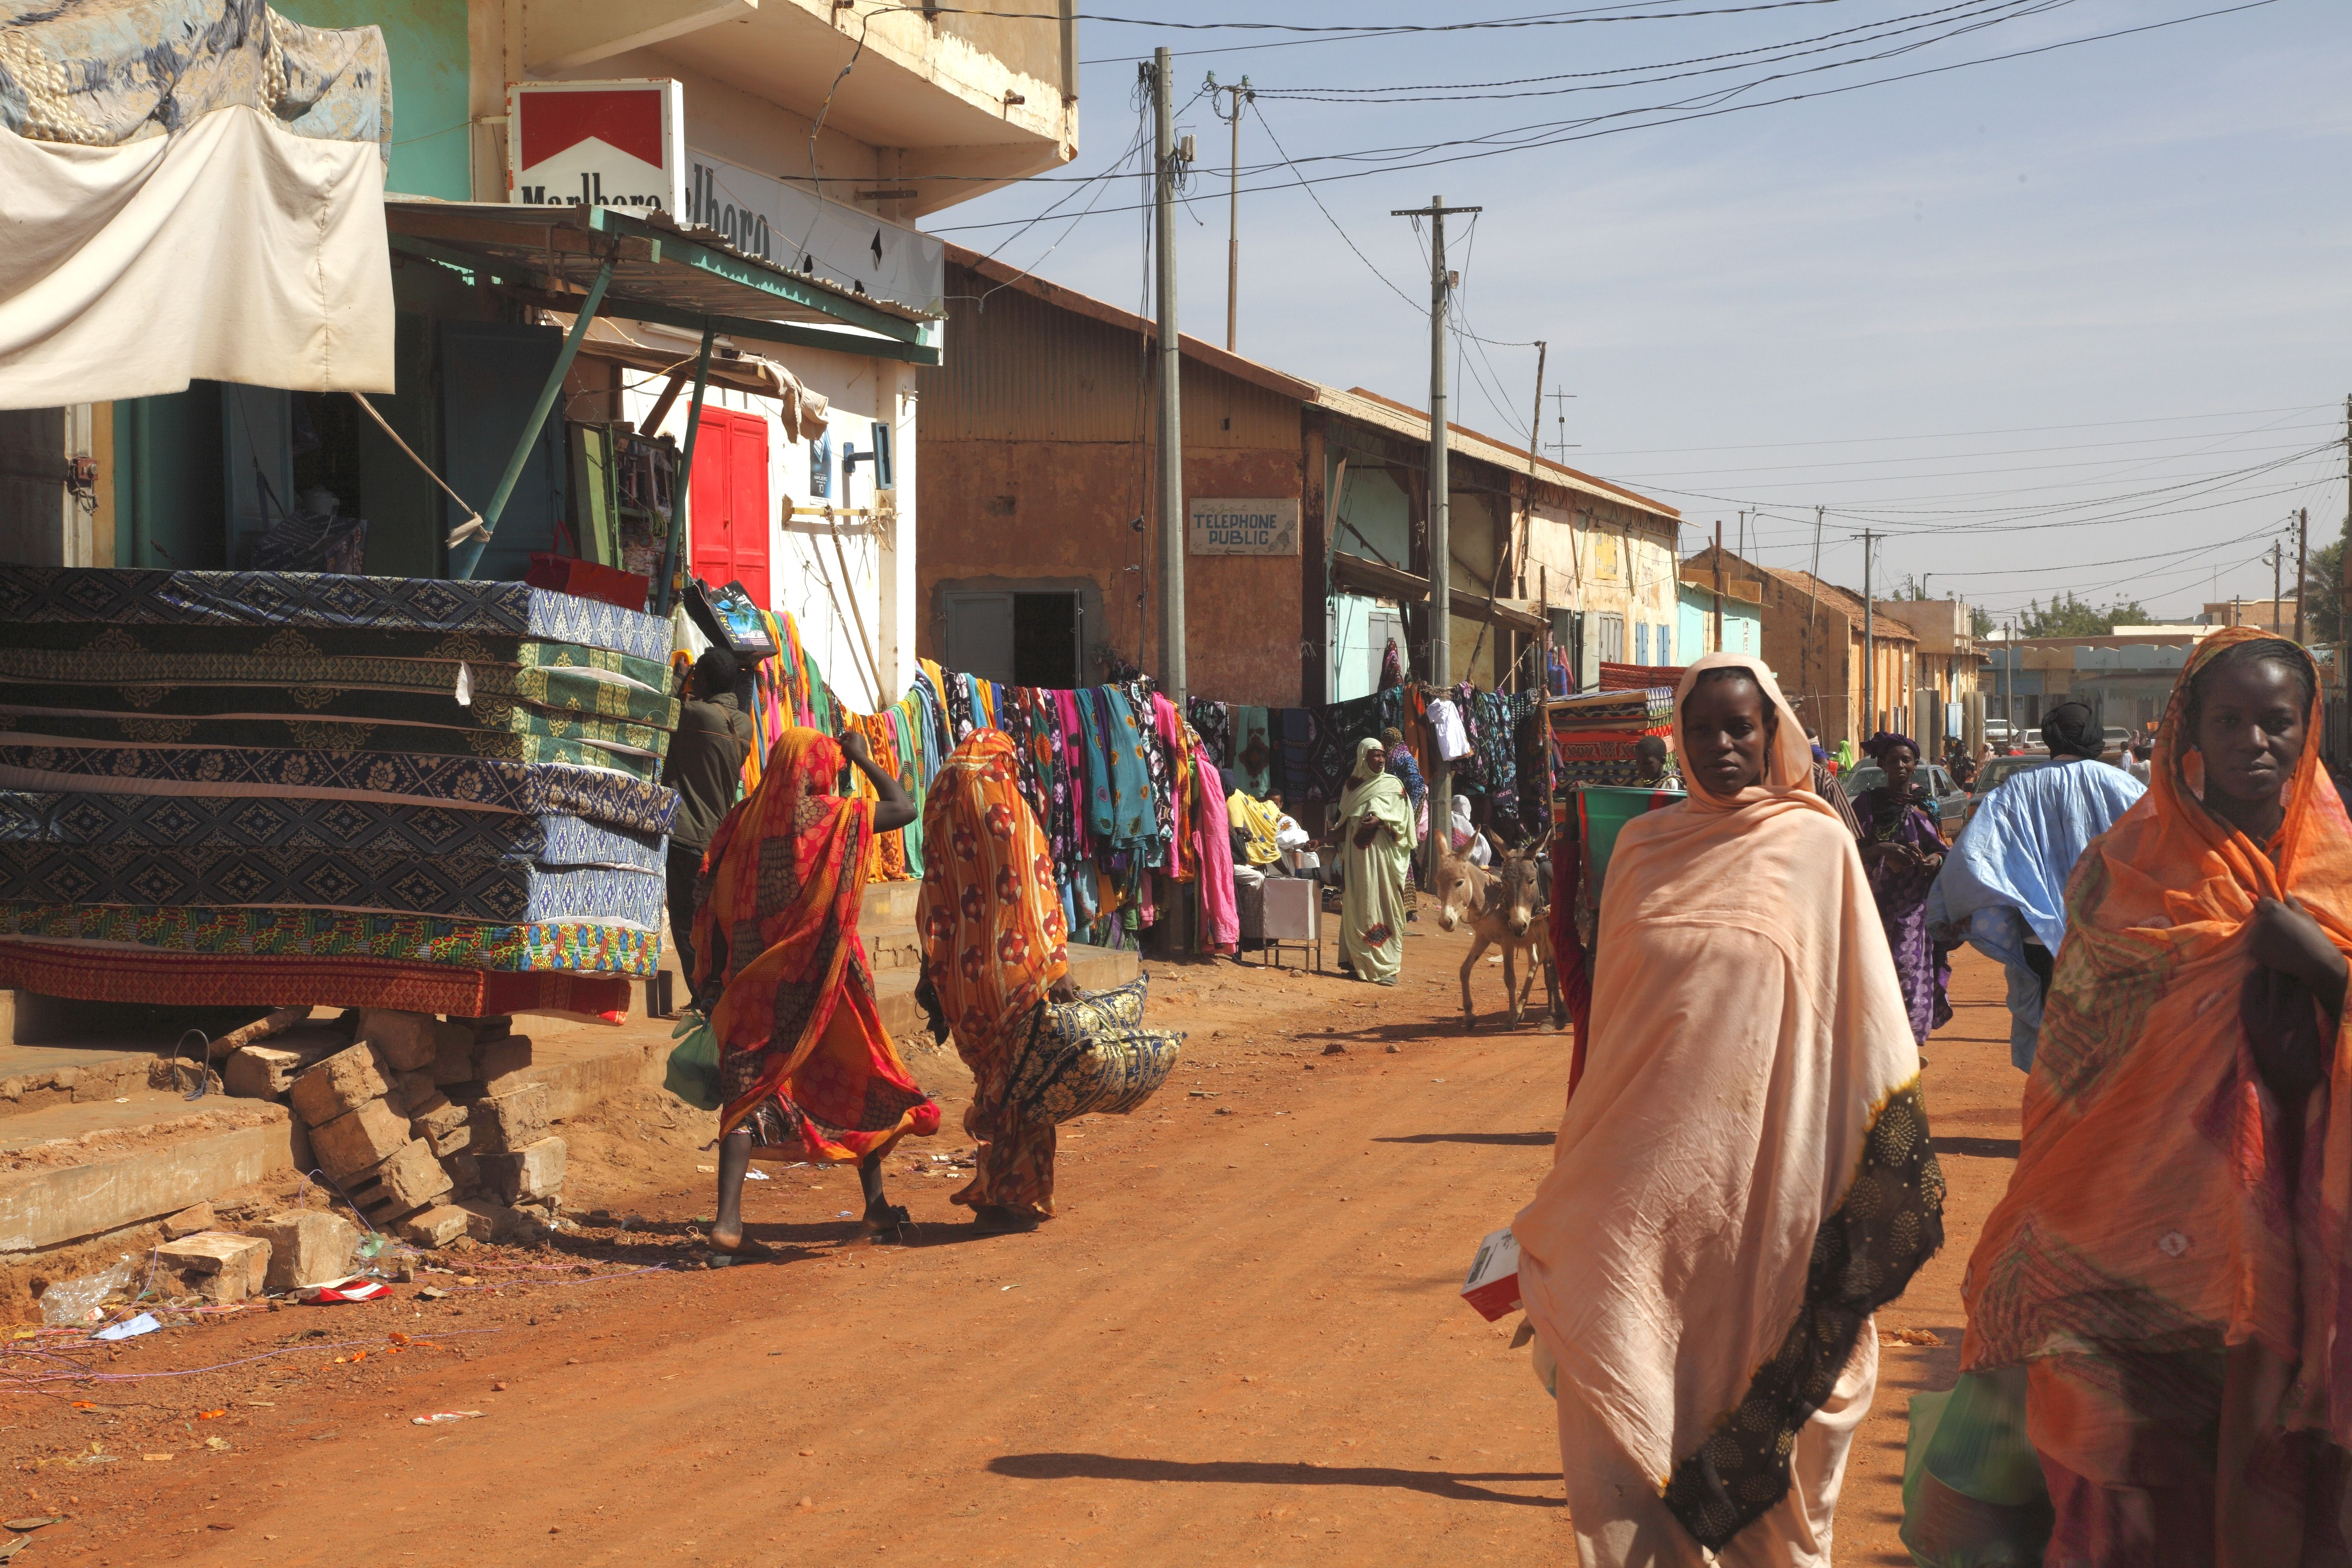 western africa mauritania s n gal river valley kaedi market 483603675 591b08f43df78cf5fad1bd7c Top 10 Myths and Misconceptions About Africa